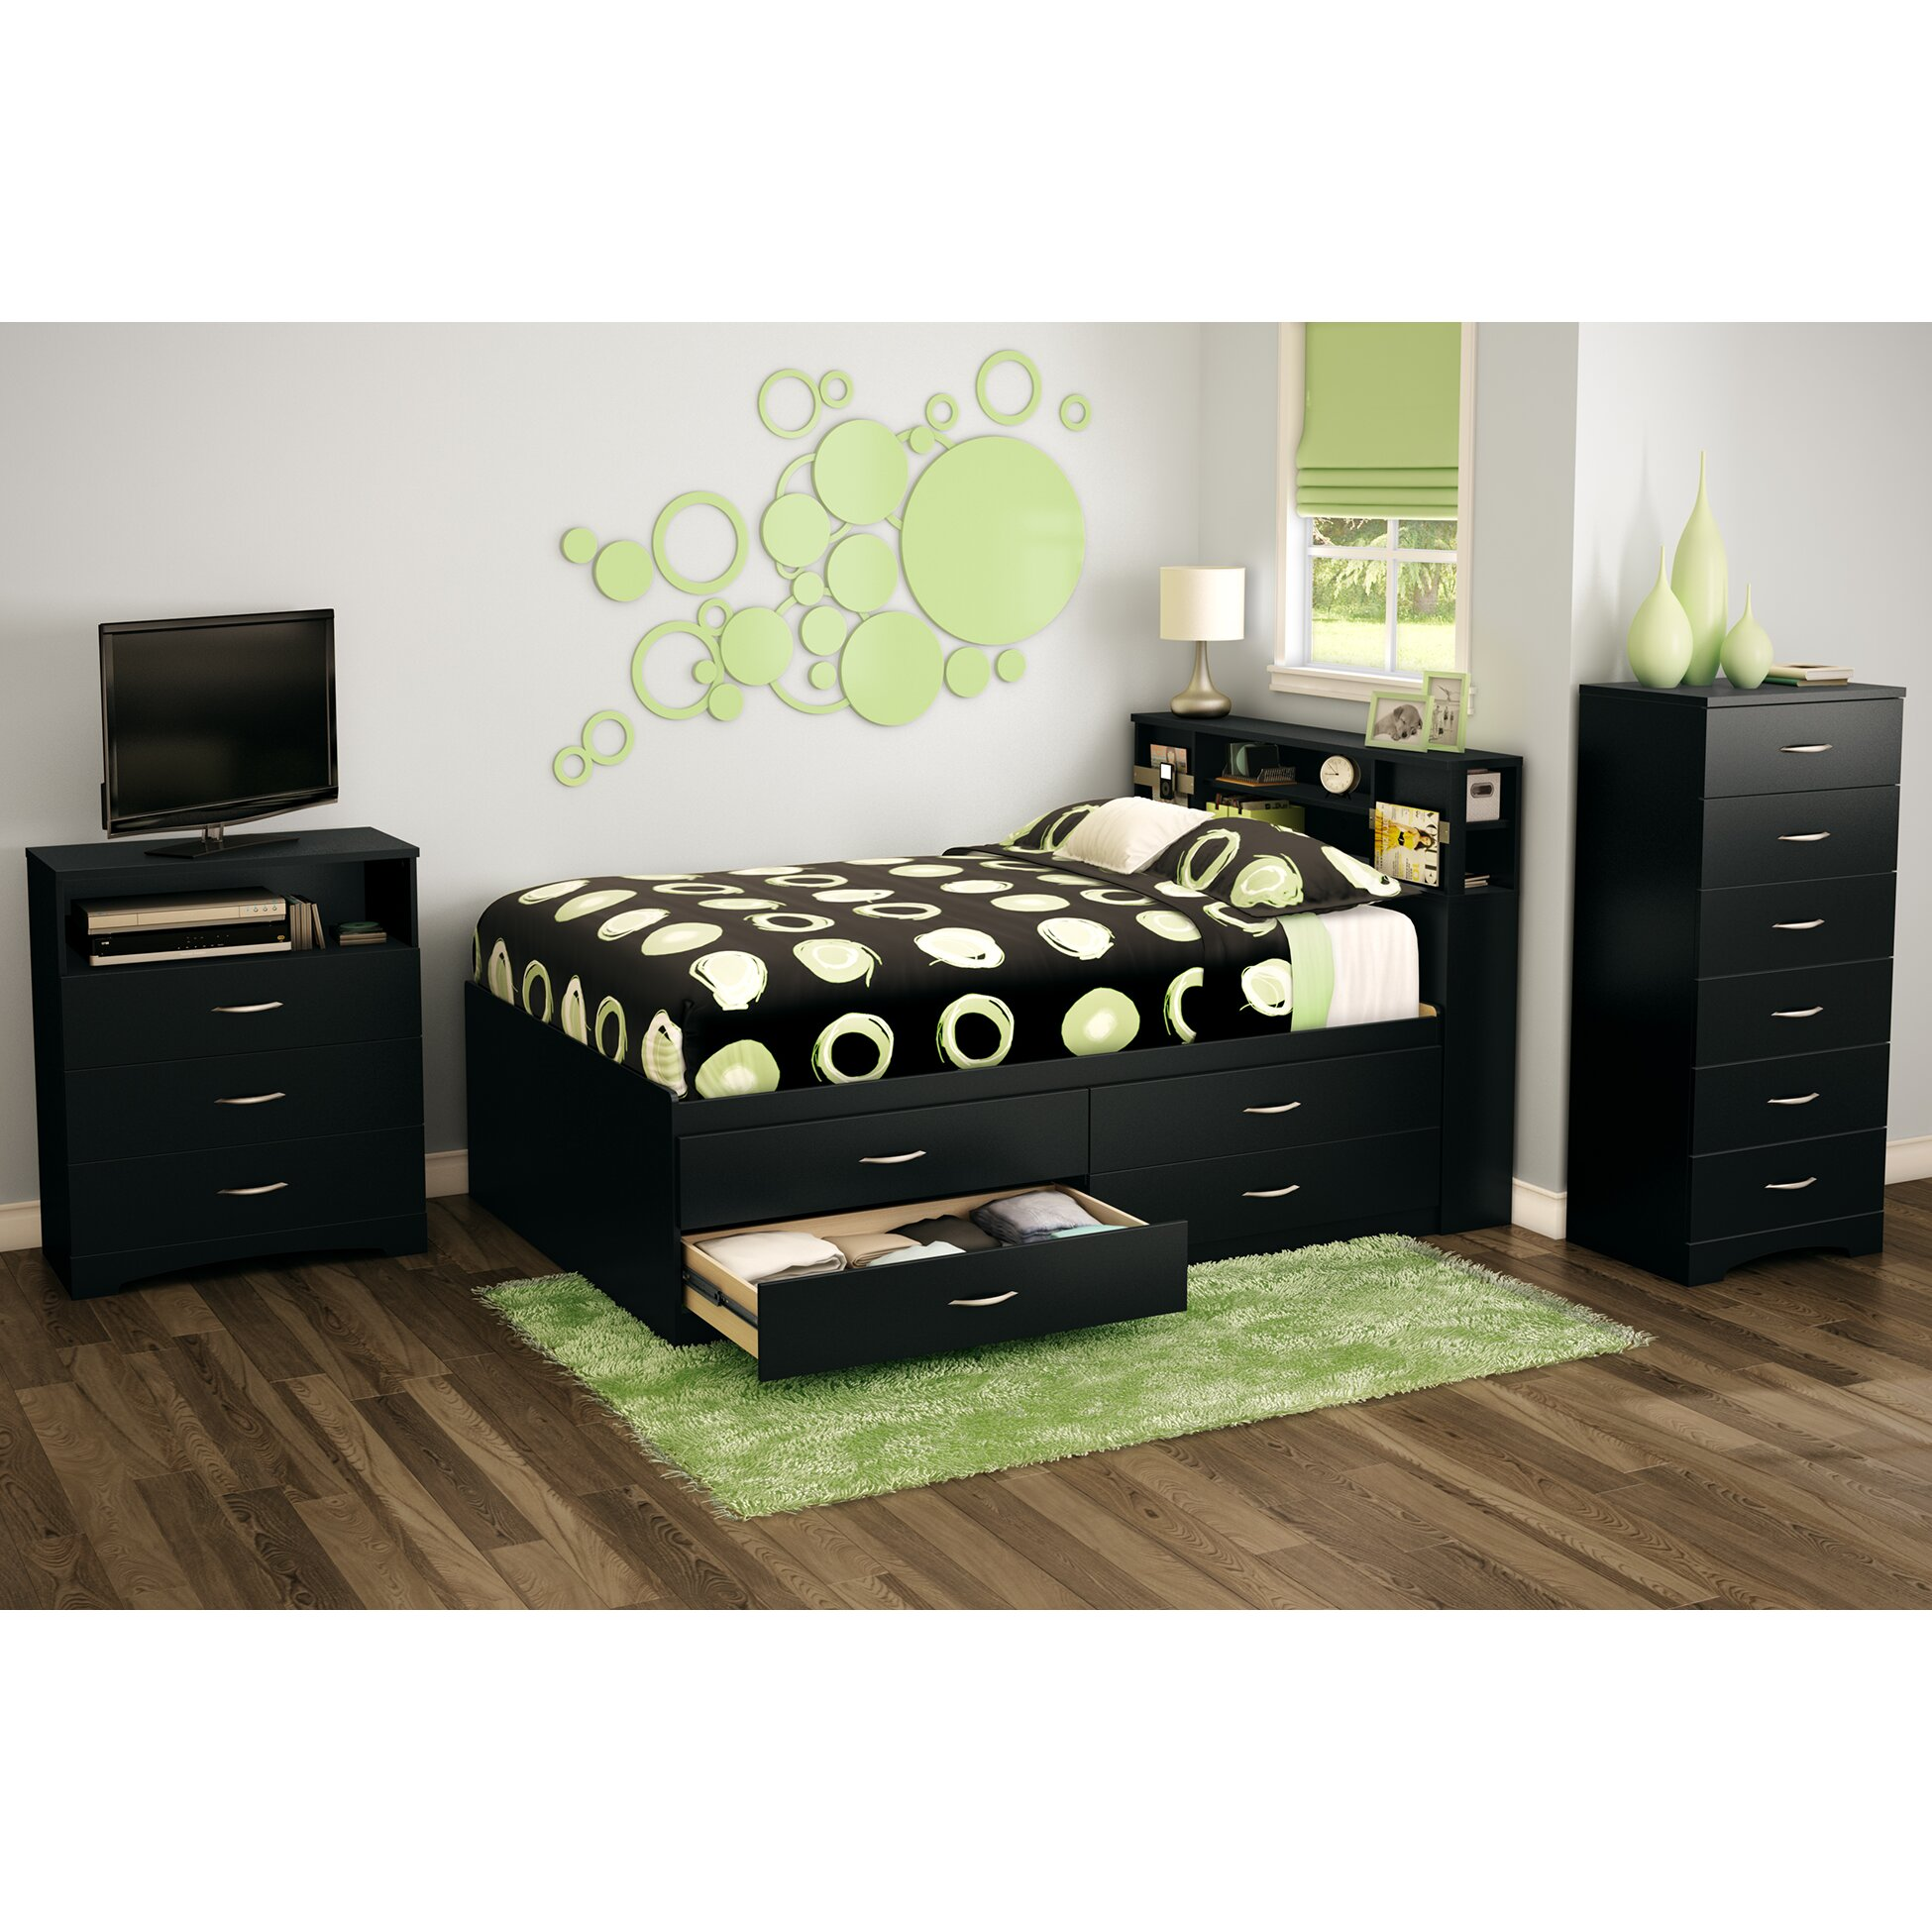 South shore full storage platform bed reviews wayfair for Complete bedroom sets with mattress